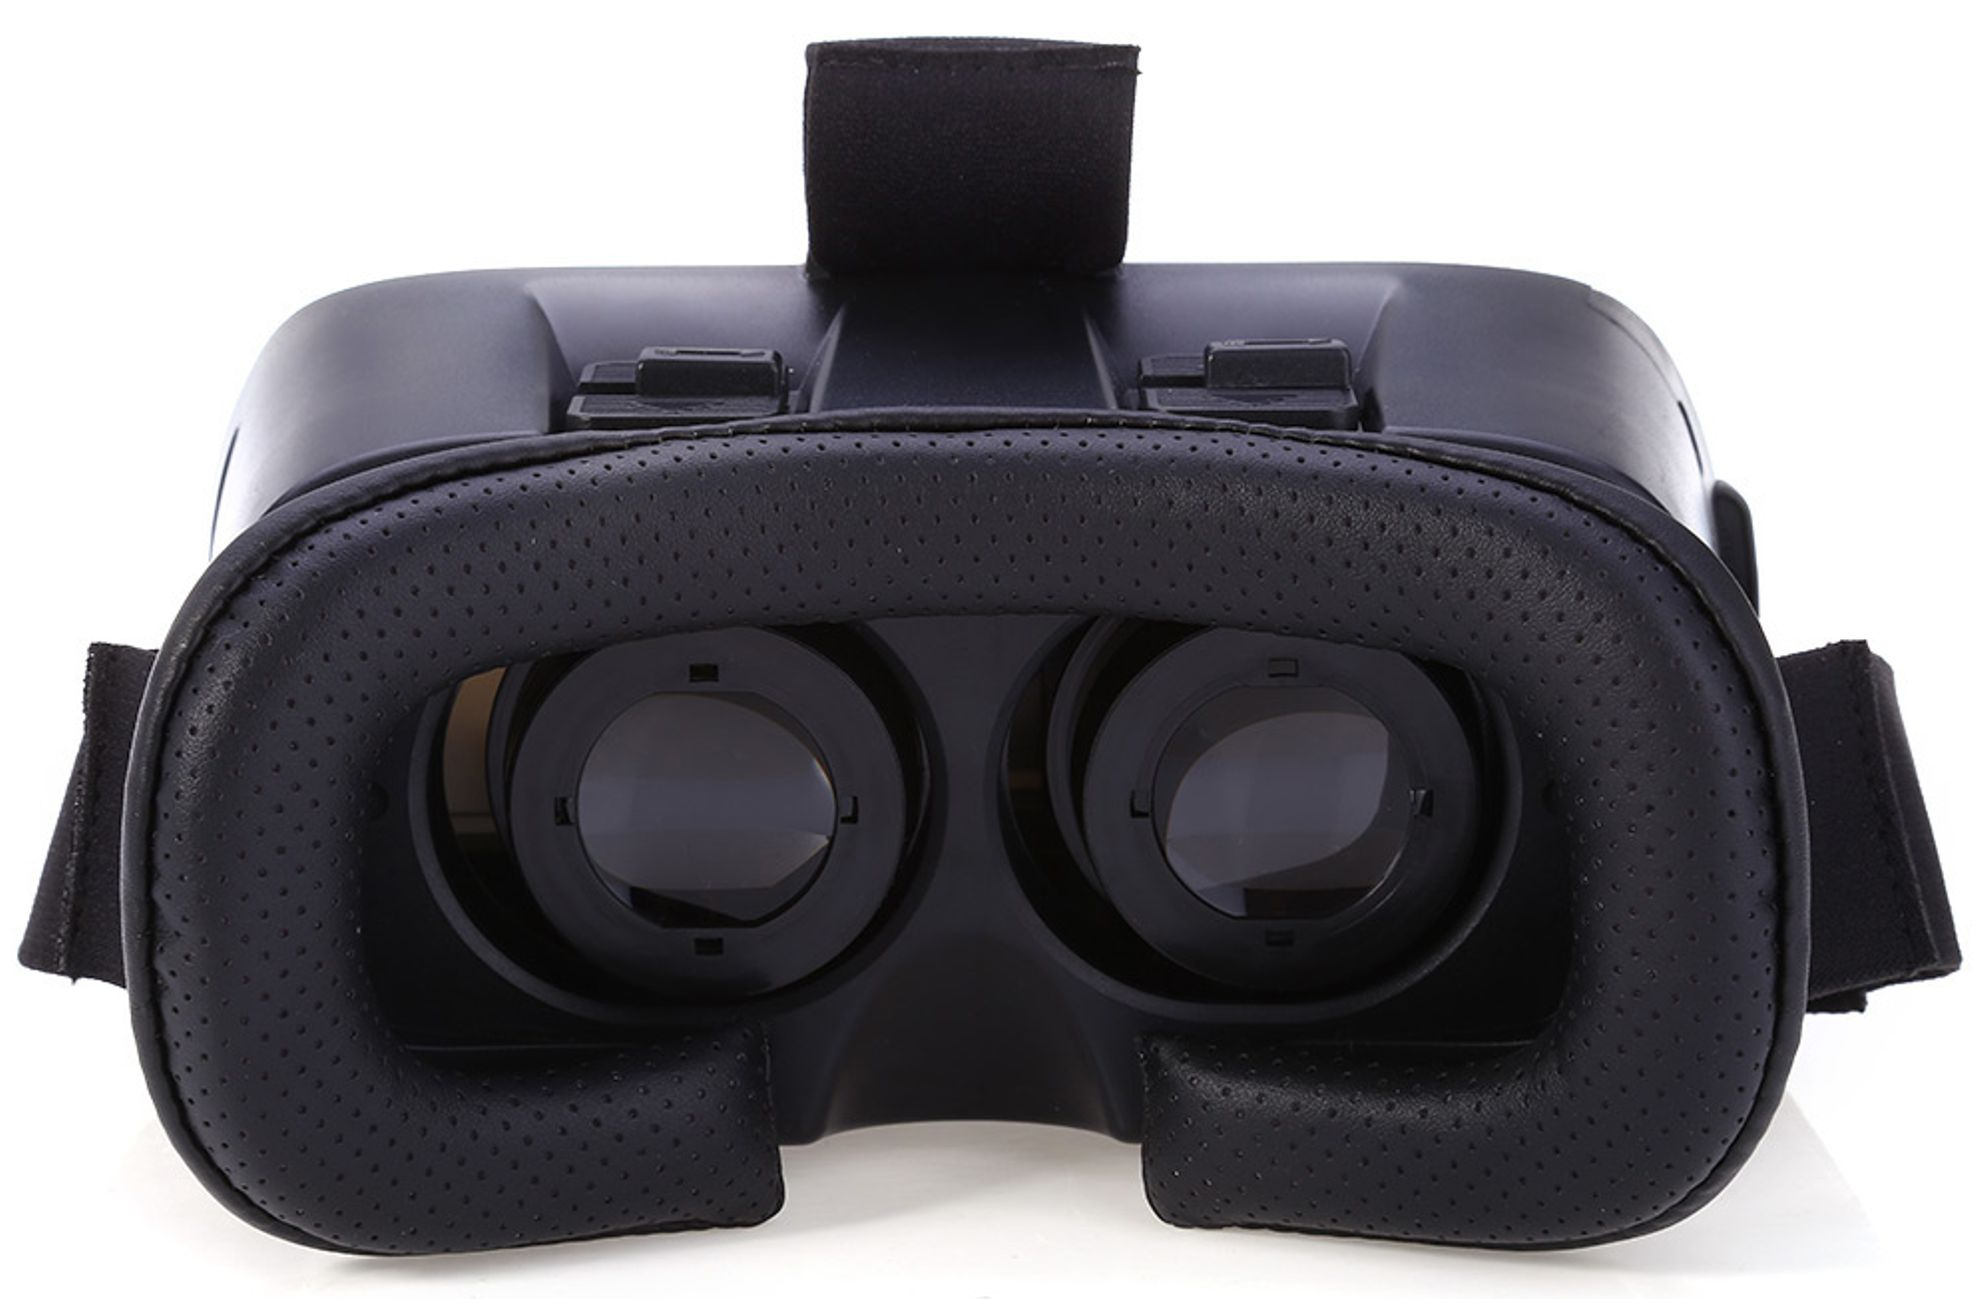 eed207b0791 VR Case Virtual Reality Headset - Virtual Reality